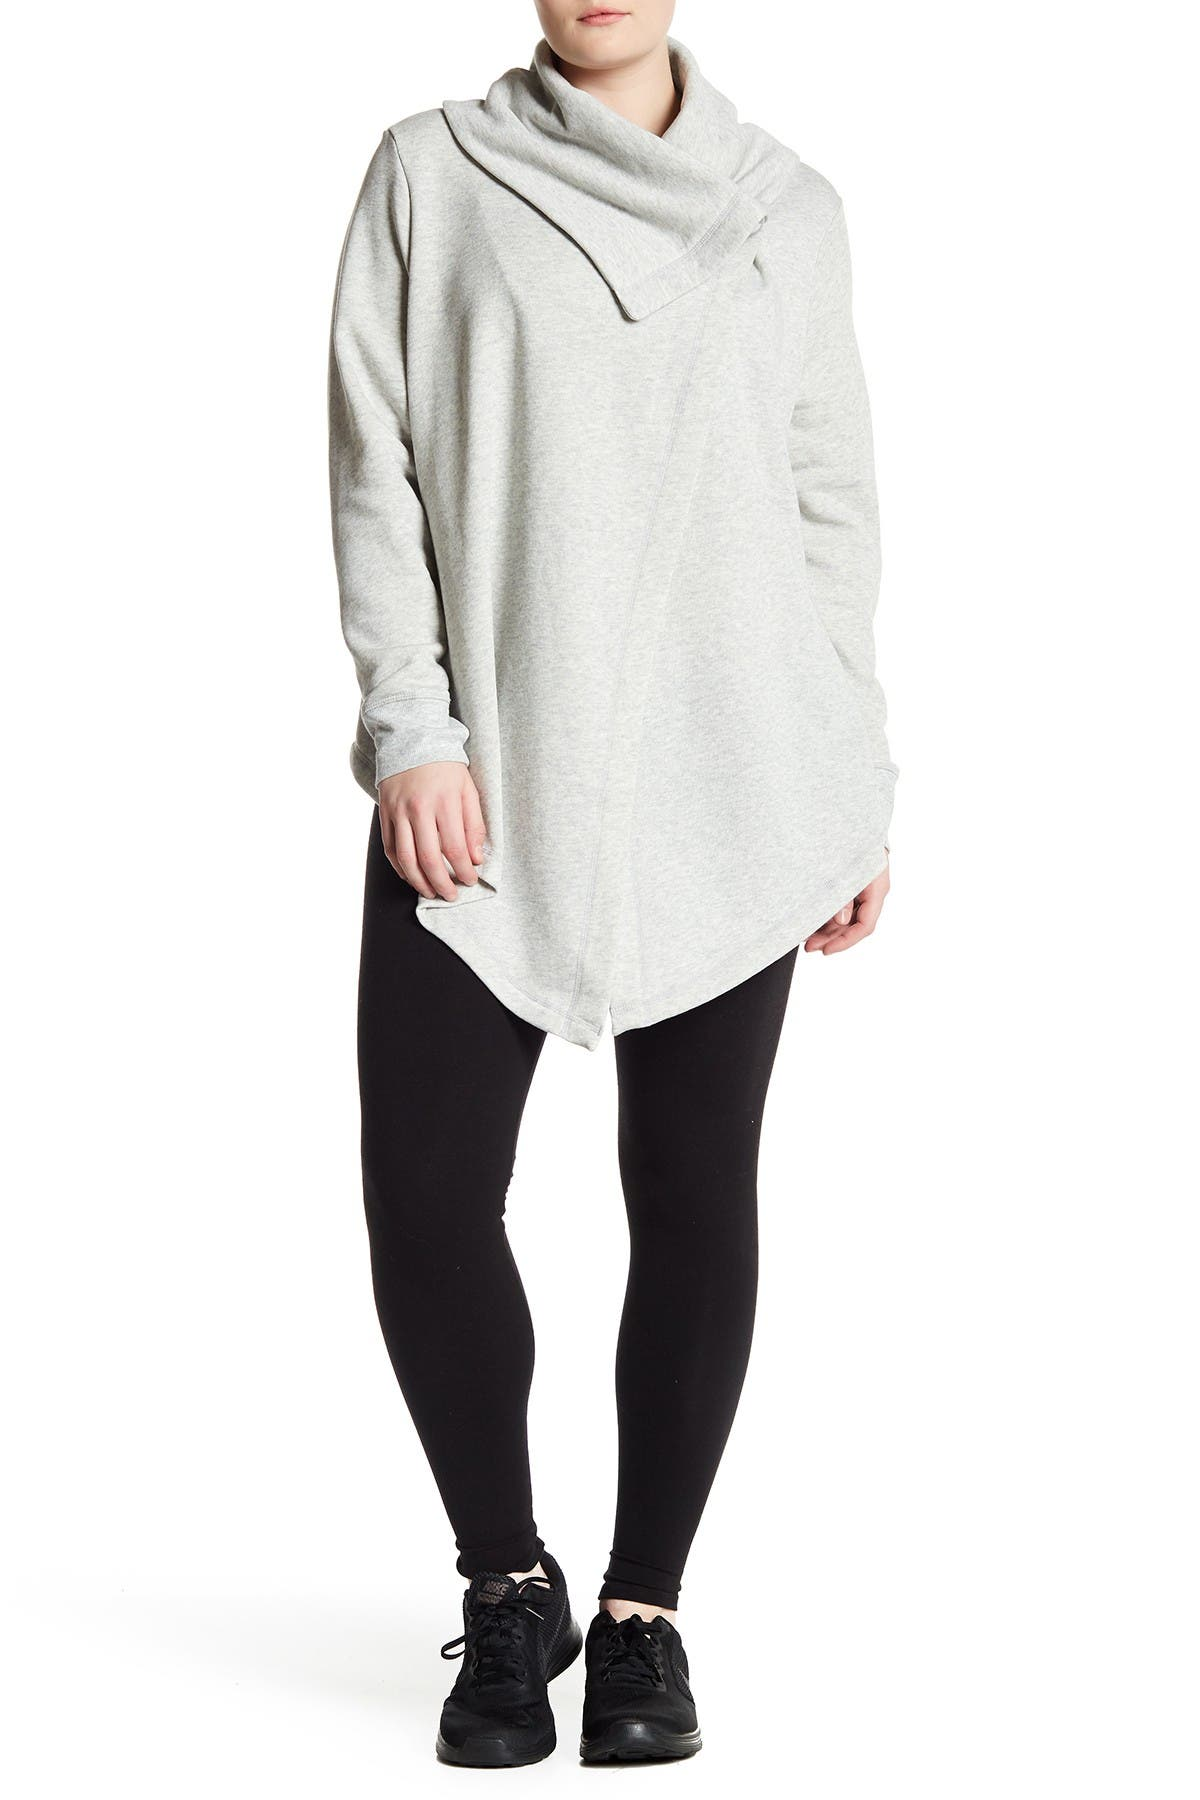 Image of Z By Zella Shooting Star Cardigan